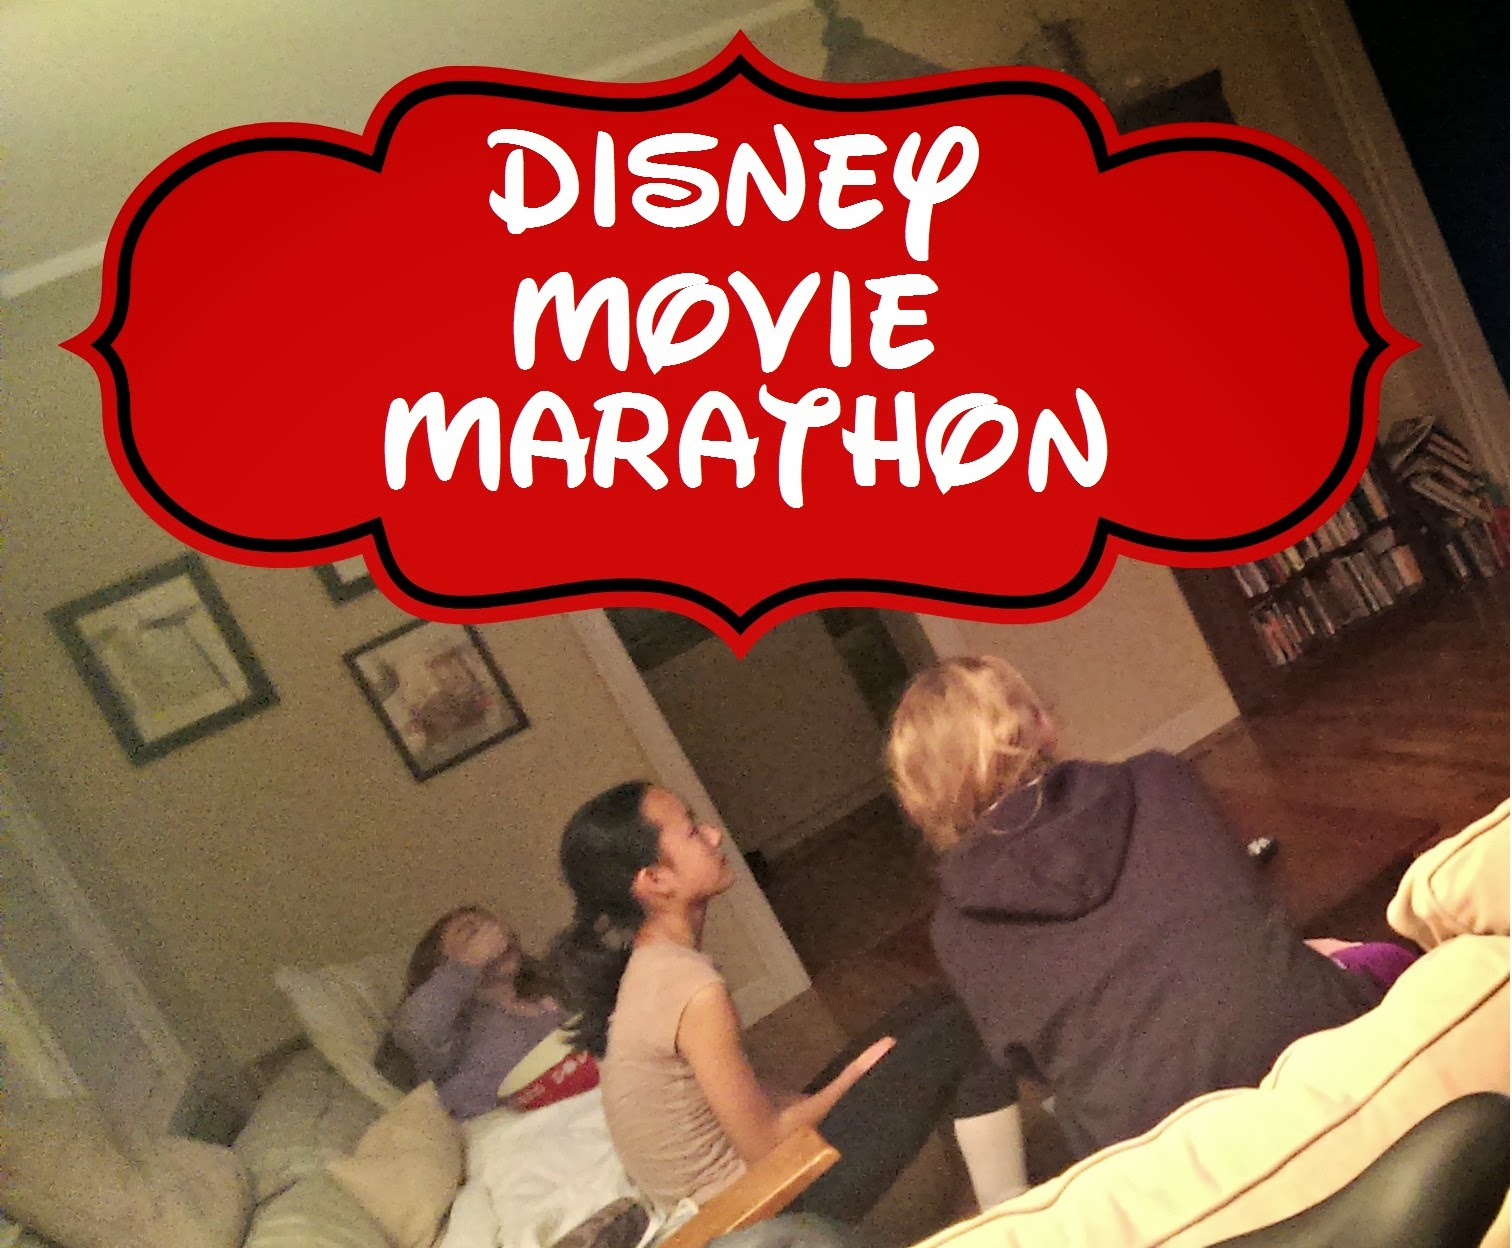 #DisneySide @Home celebration: Disney movie marathon